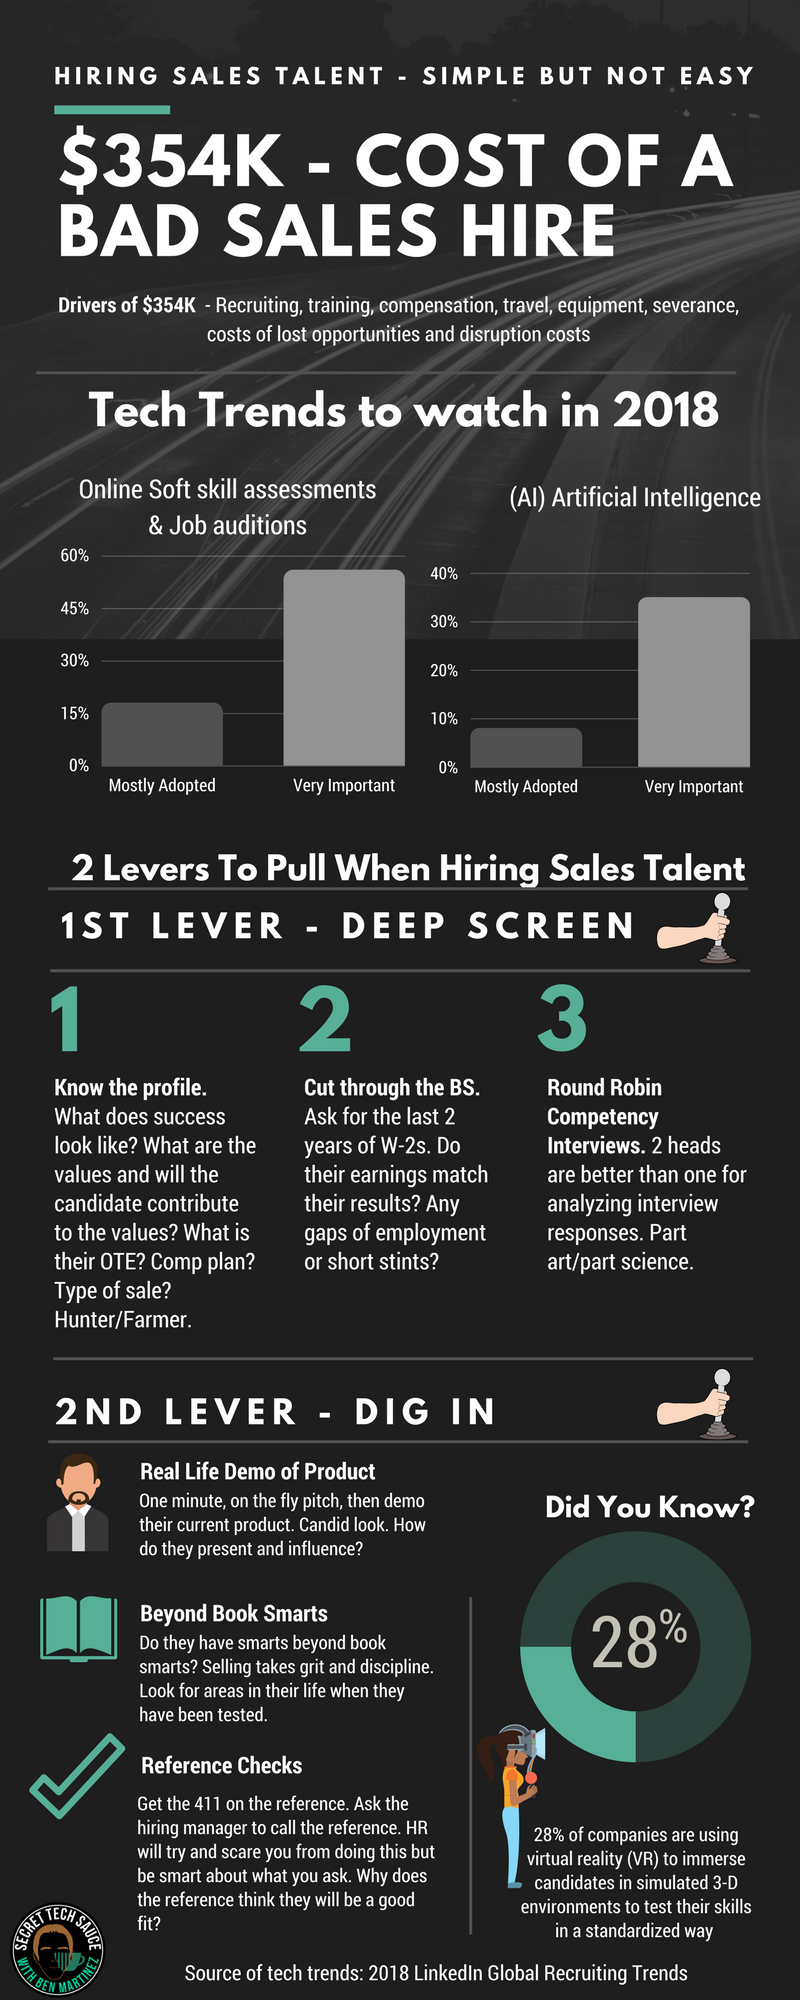 Hiring Sales Talent - Simple But Not Easy